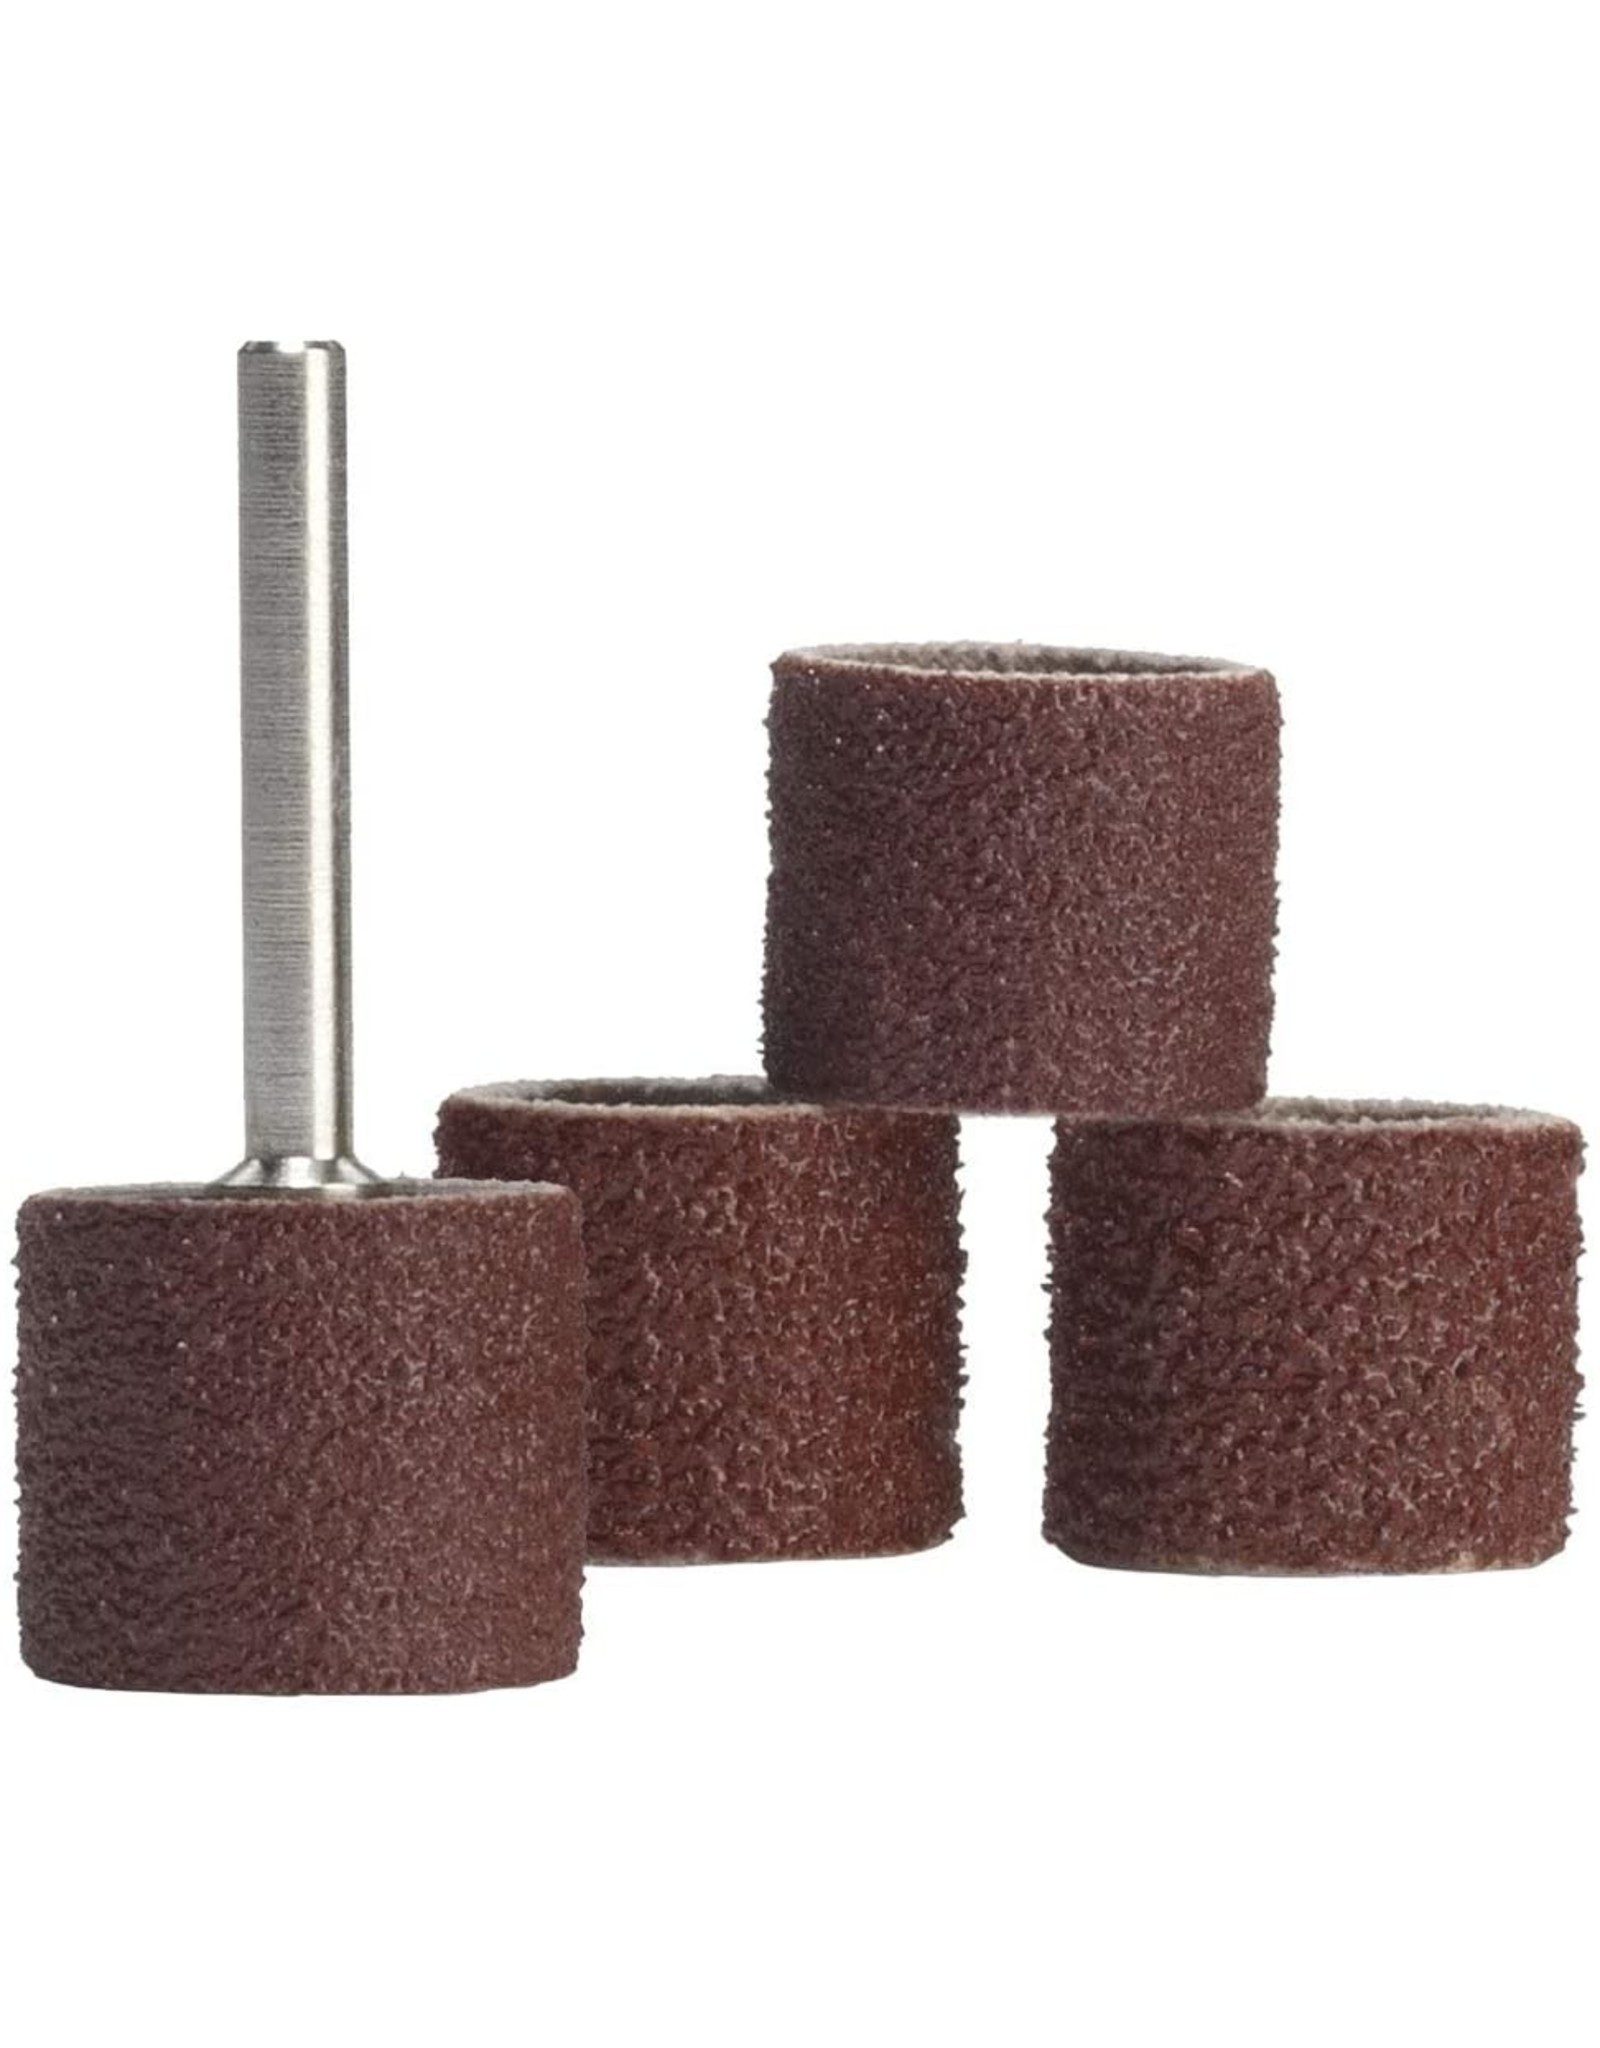 ConairPro Conair Pro Dog Replacement Sander Bands